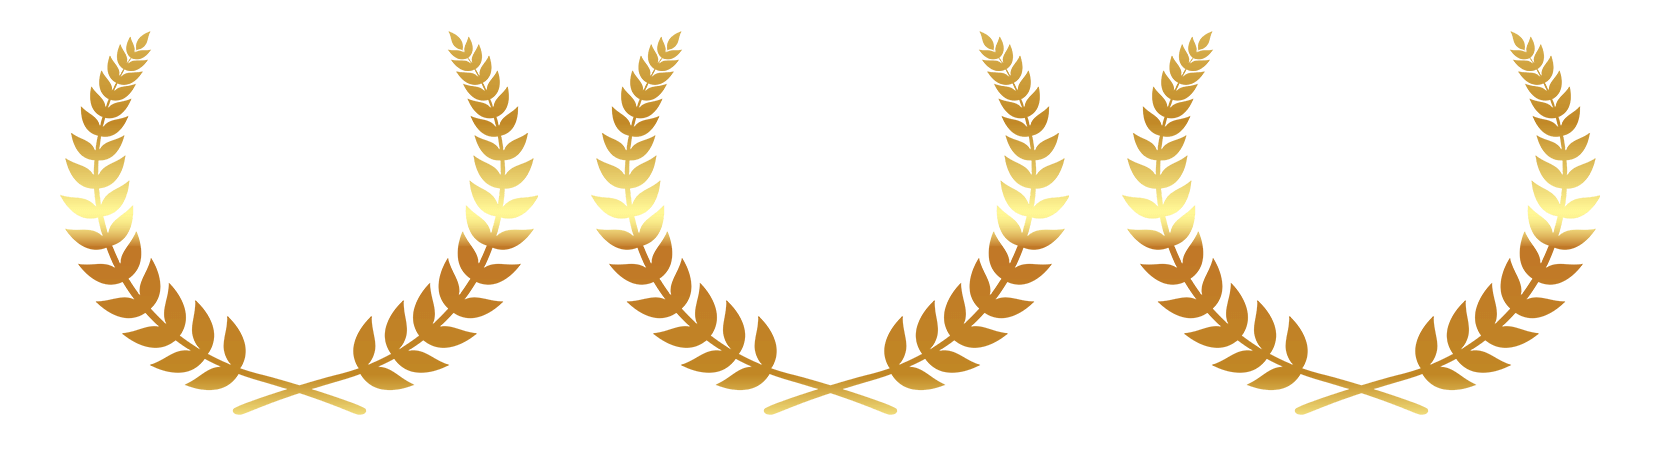 https://seminyak.hotelindigo.com/uploads/Awards/Best Spa Putih.png